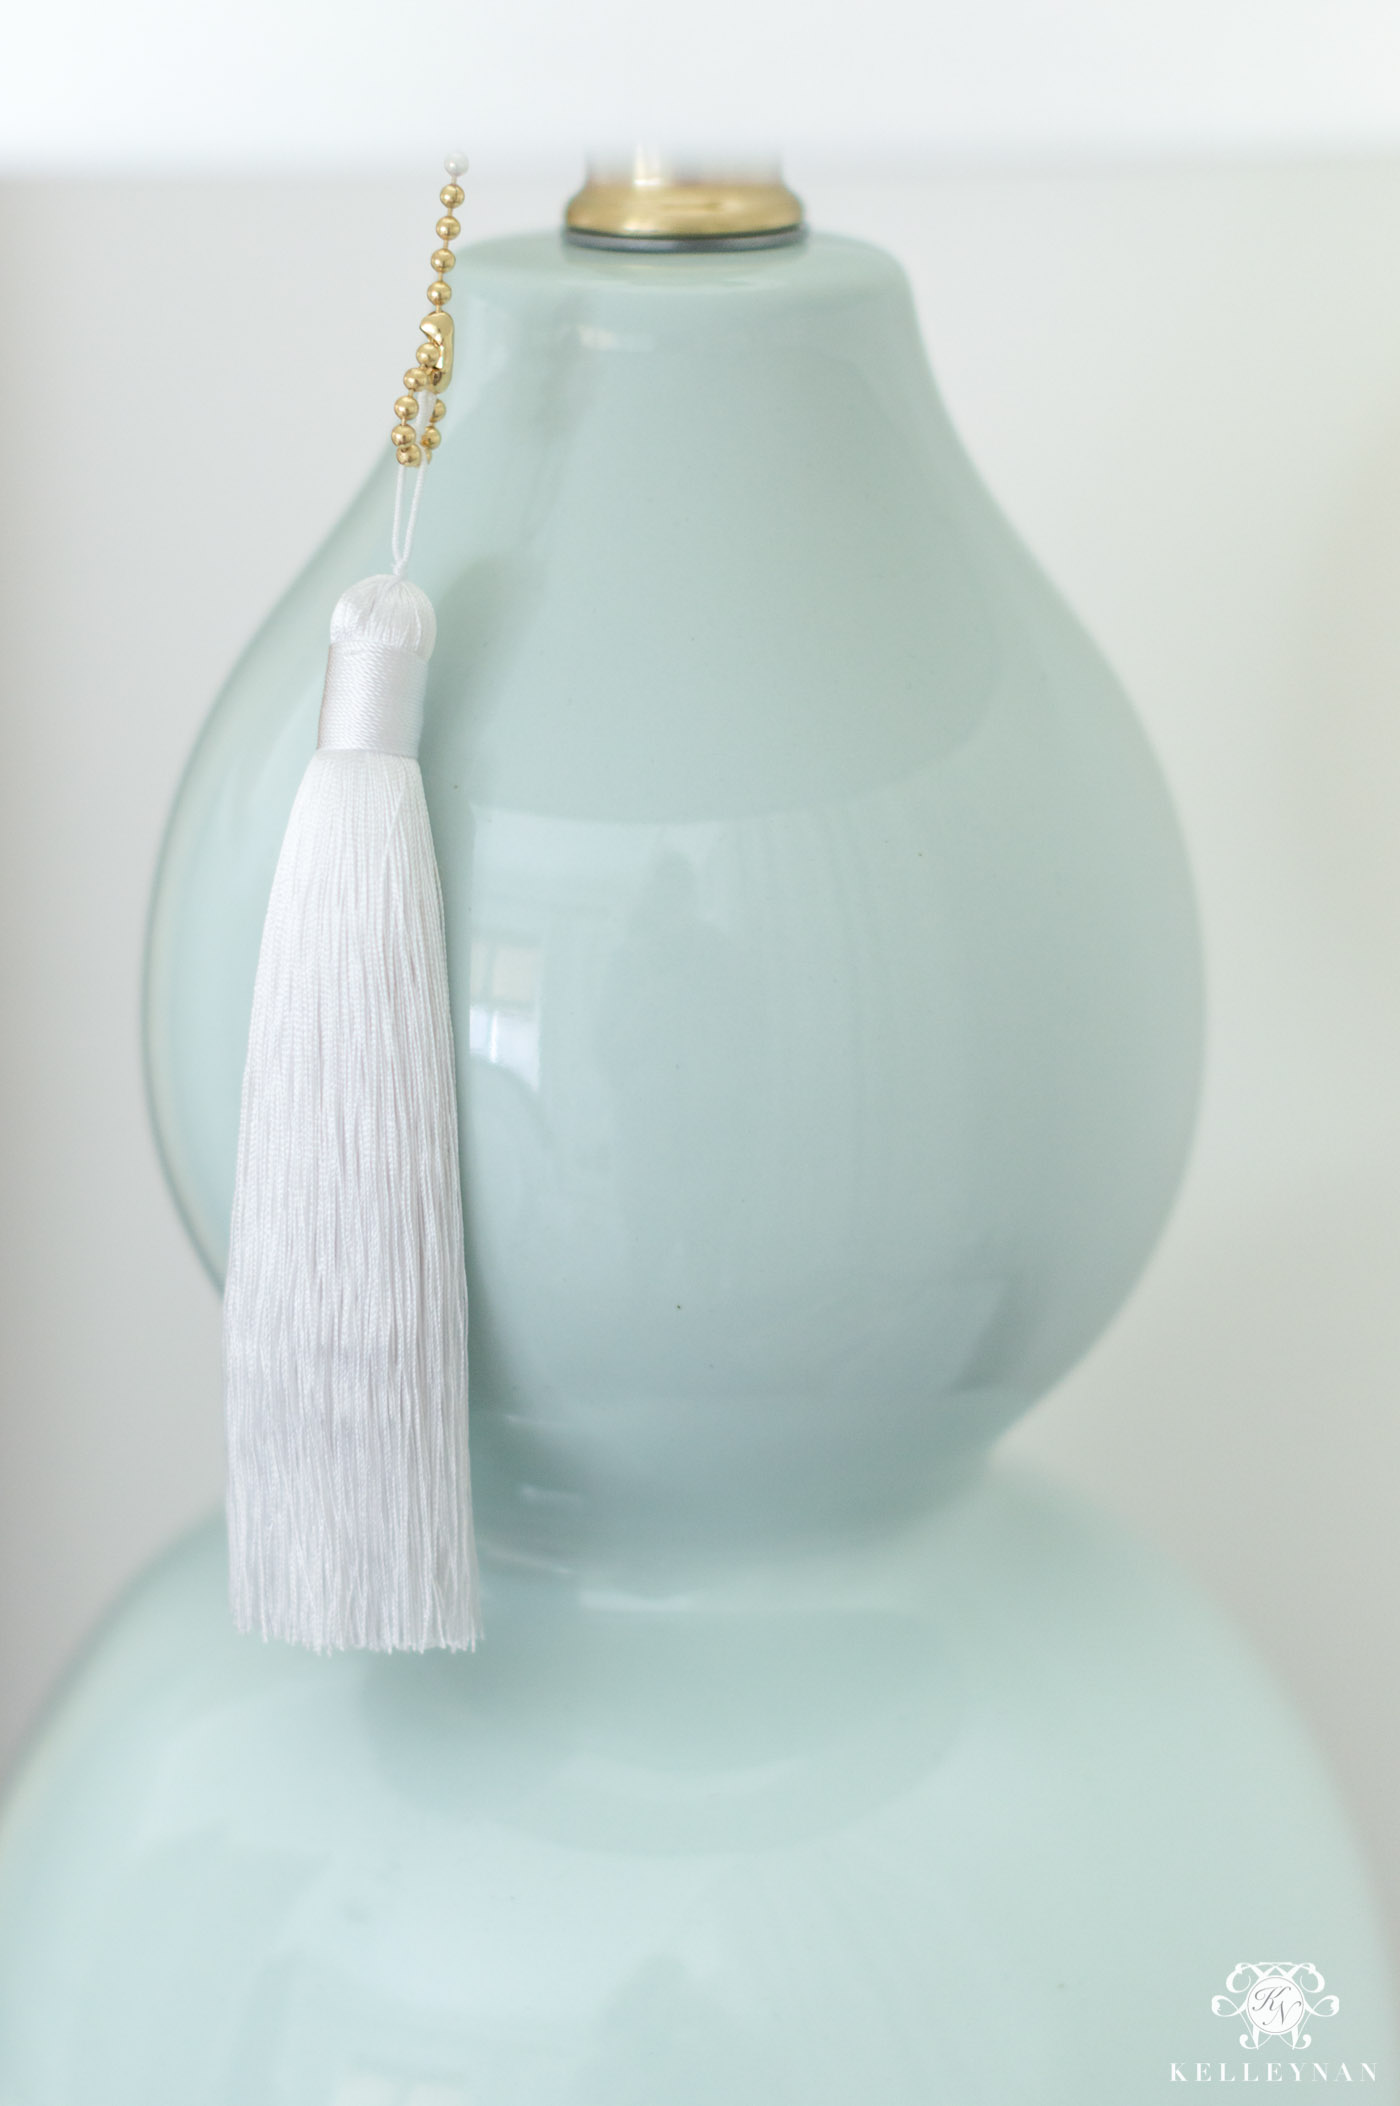 Tiffany Blue Lamps with Tassels